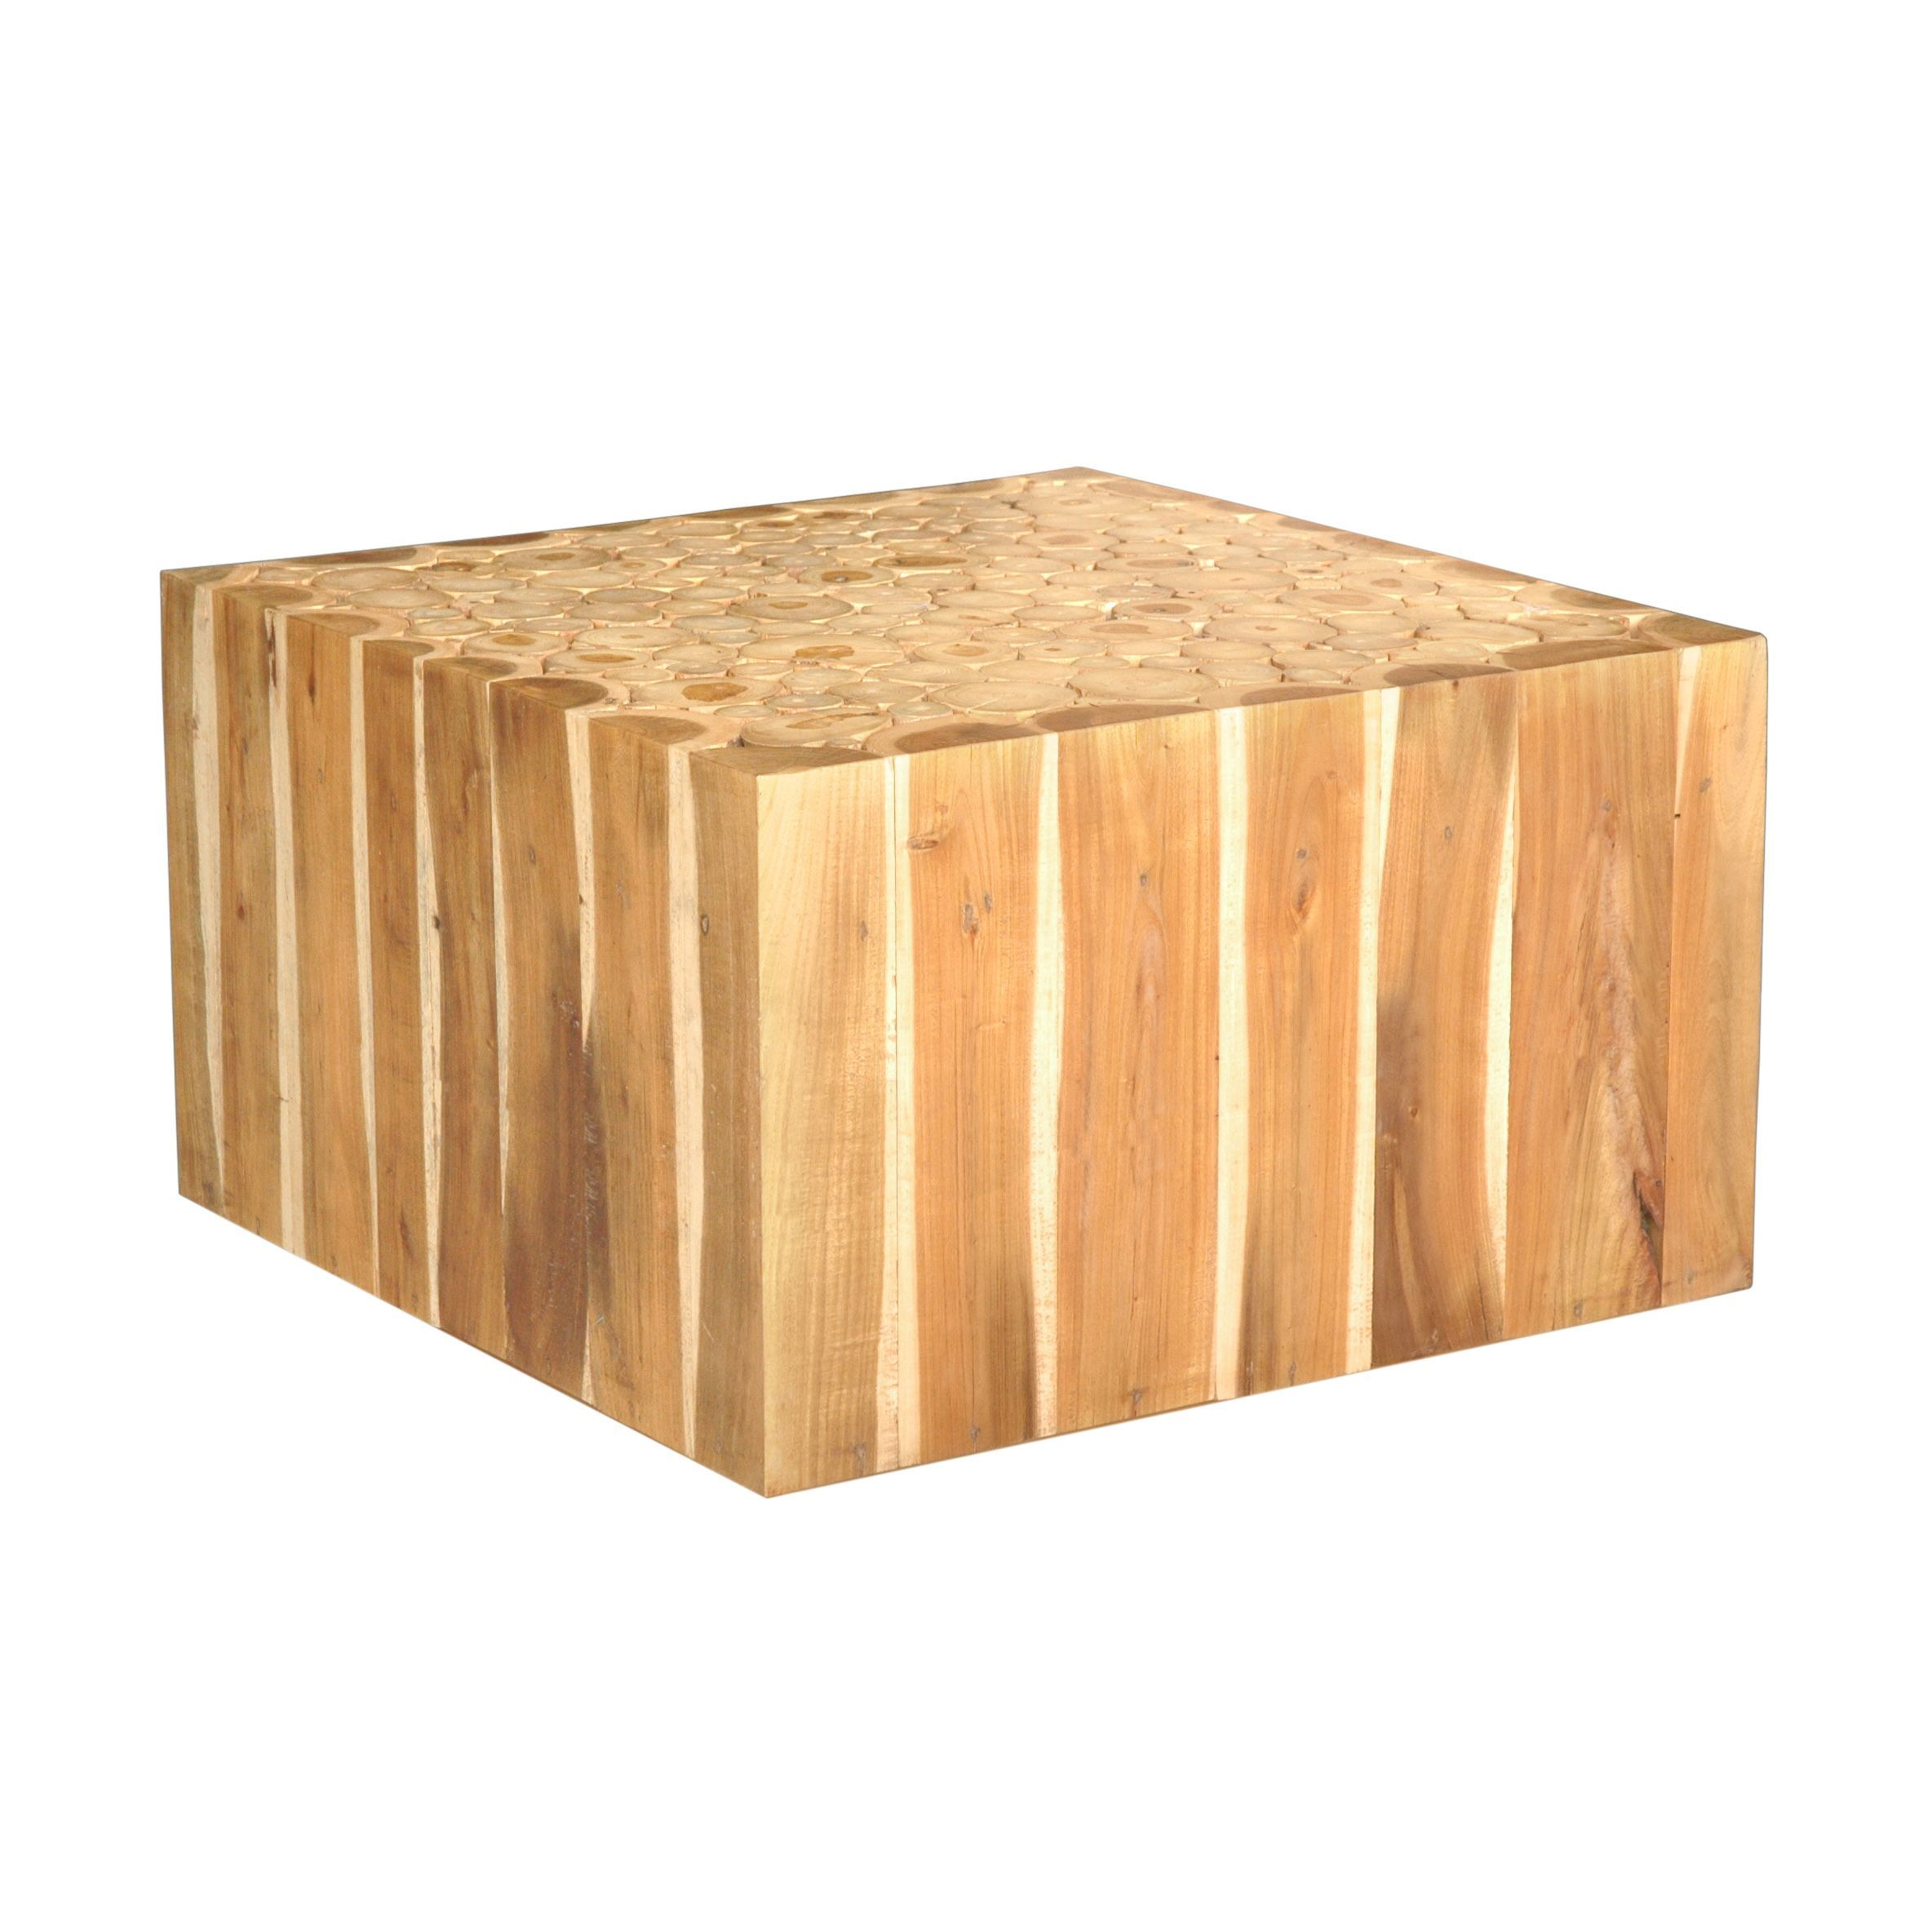 Witness The Beauty Of Sustainable Teak In This Organic And